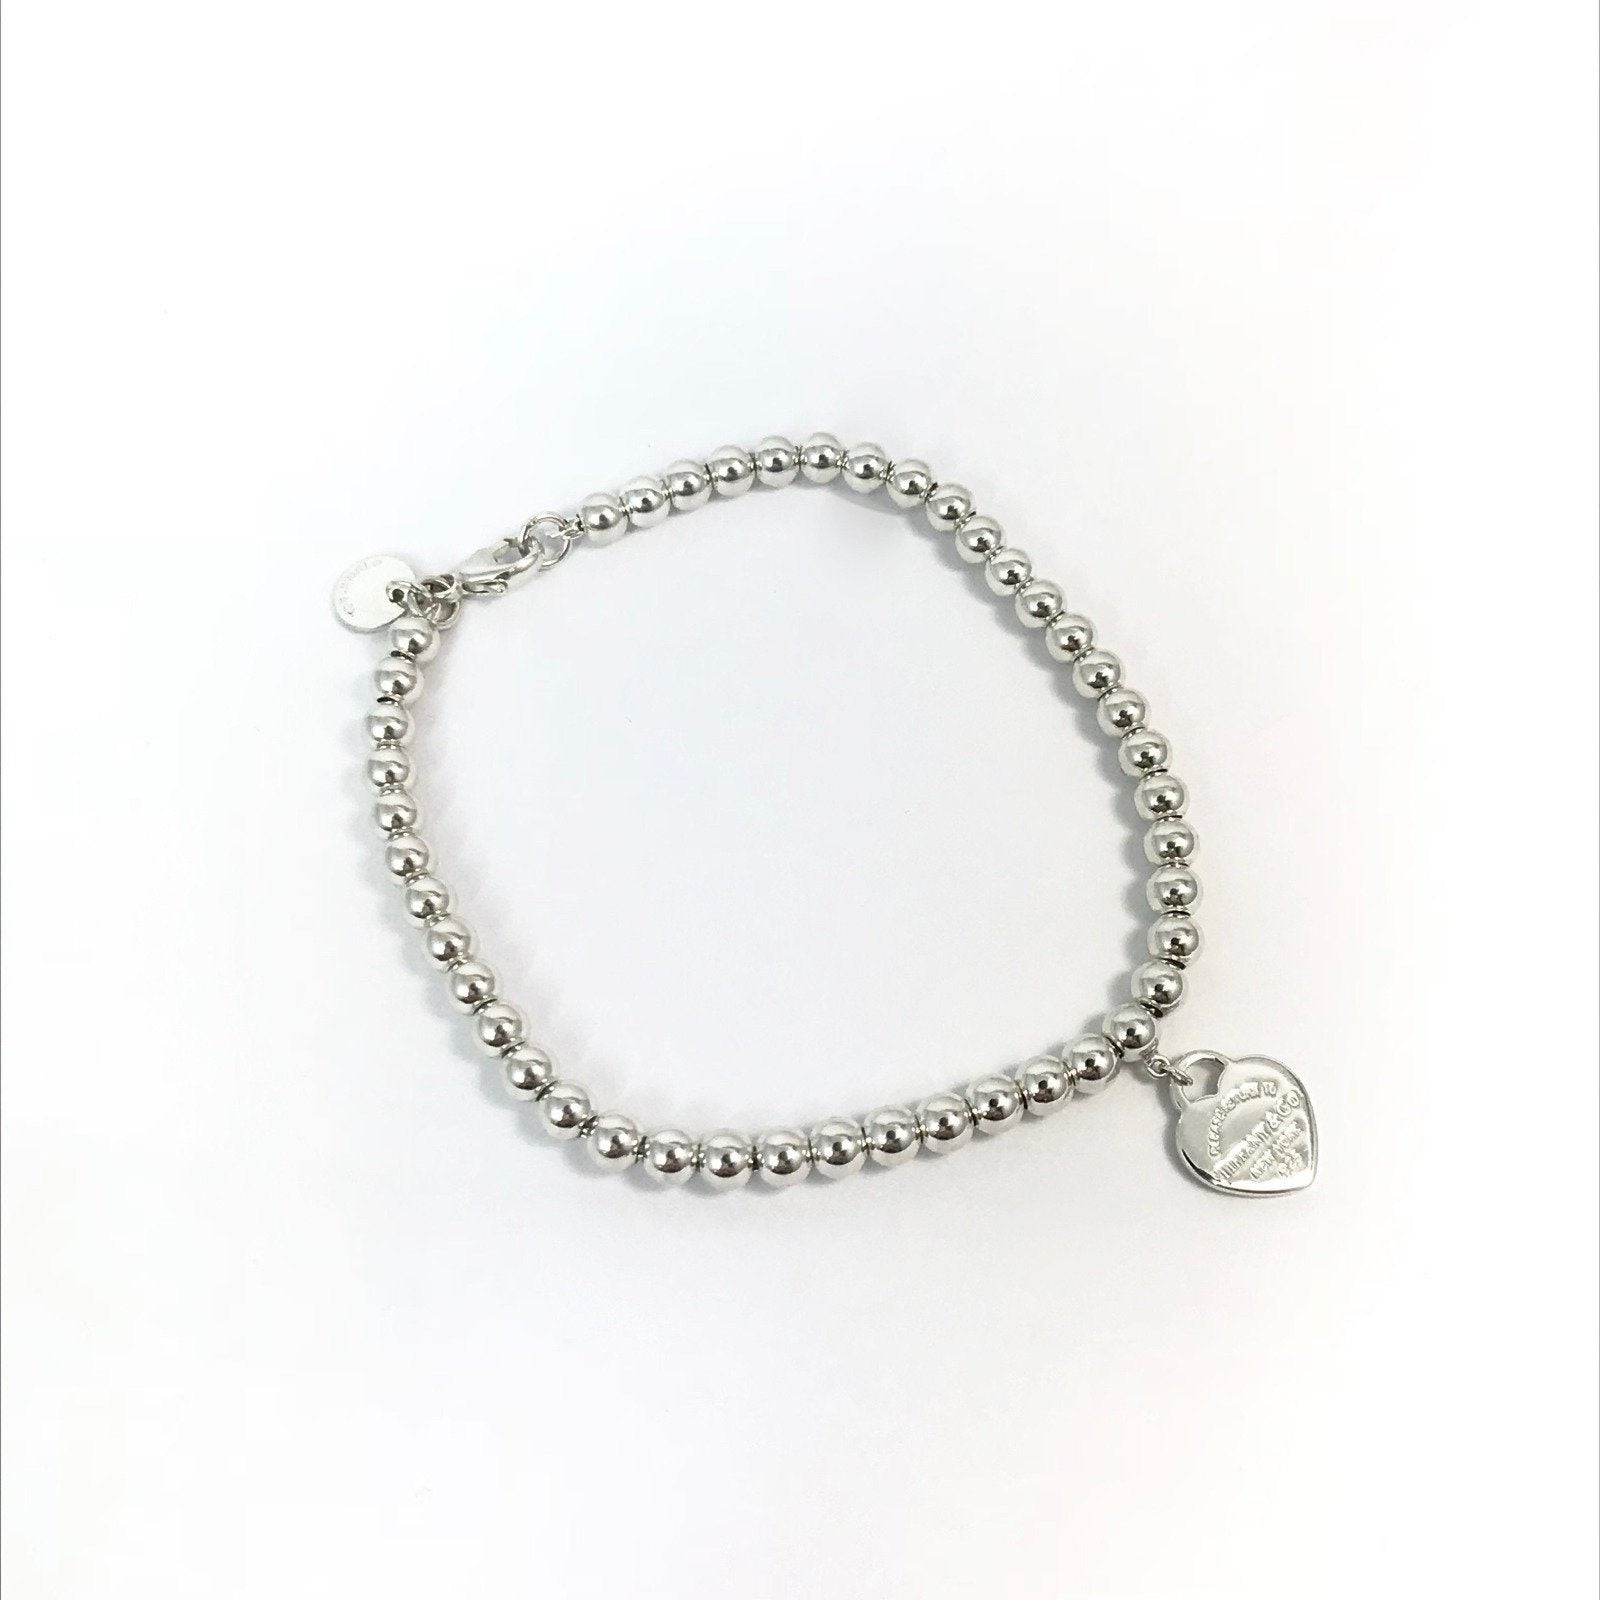 78bcde5a93e1f Tiffany & Co. Return To Tiffany Mini Heart Tag Bead Bracelet in Sterling  Silver